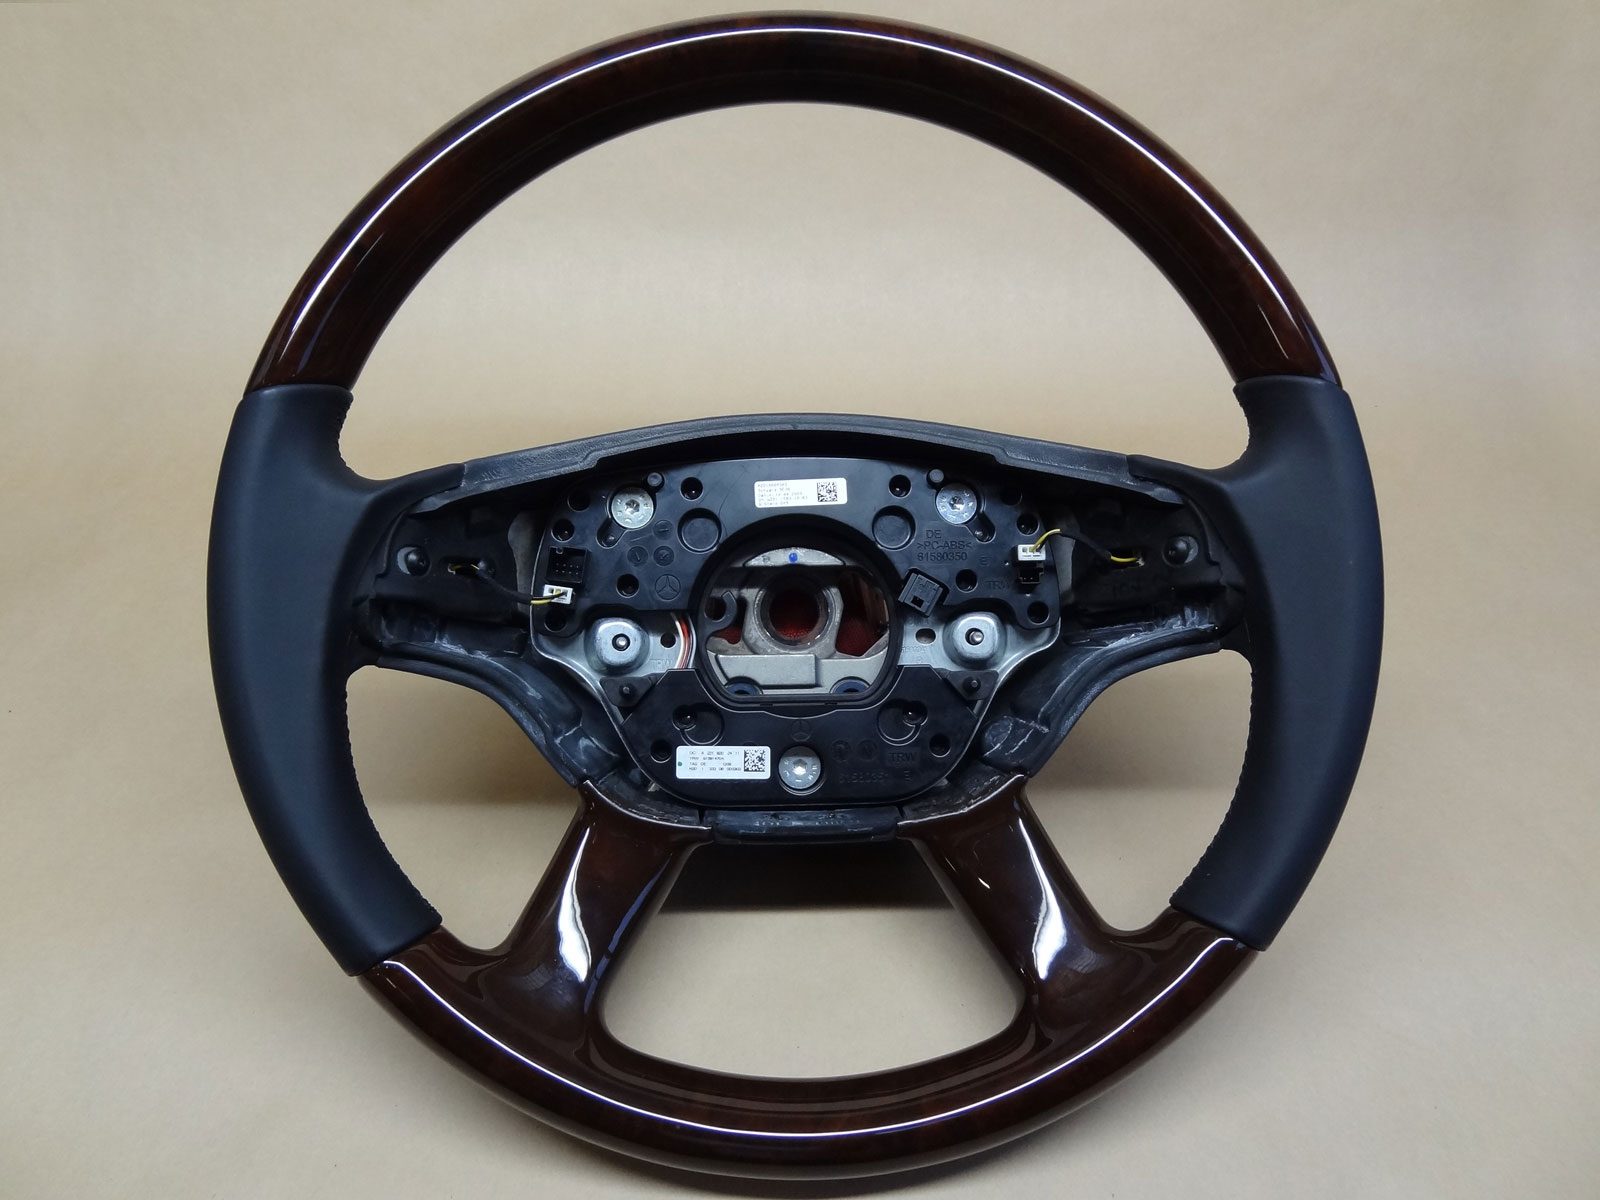 Mercedes W221l W216 Wood Leather Steering Wheel Walnut On Black Original Factory Wheel